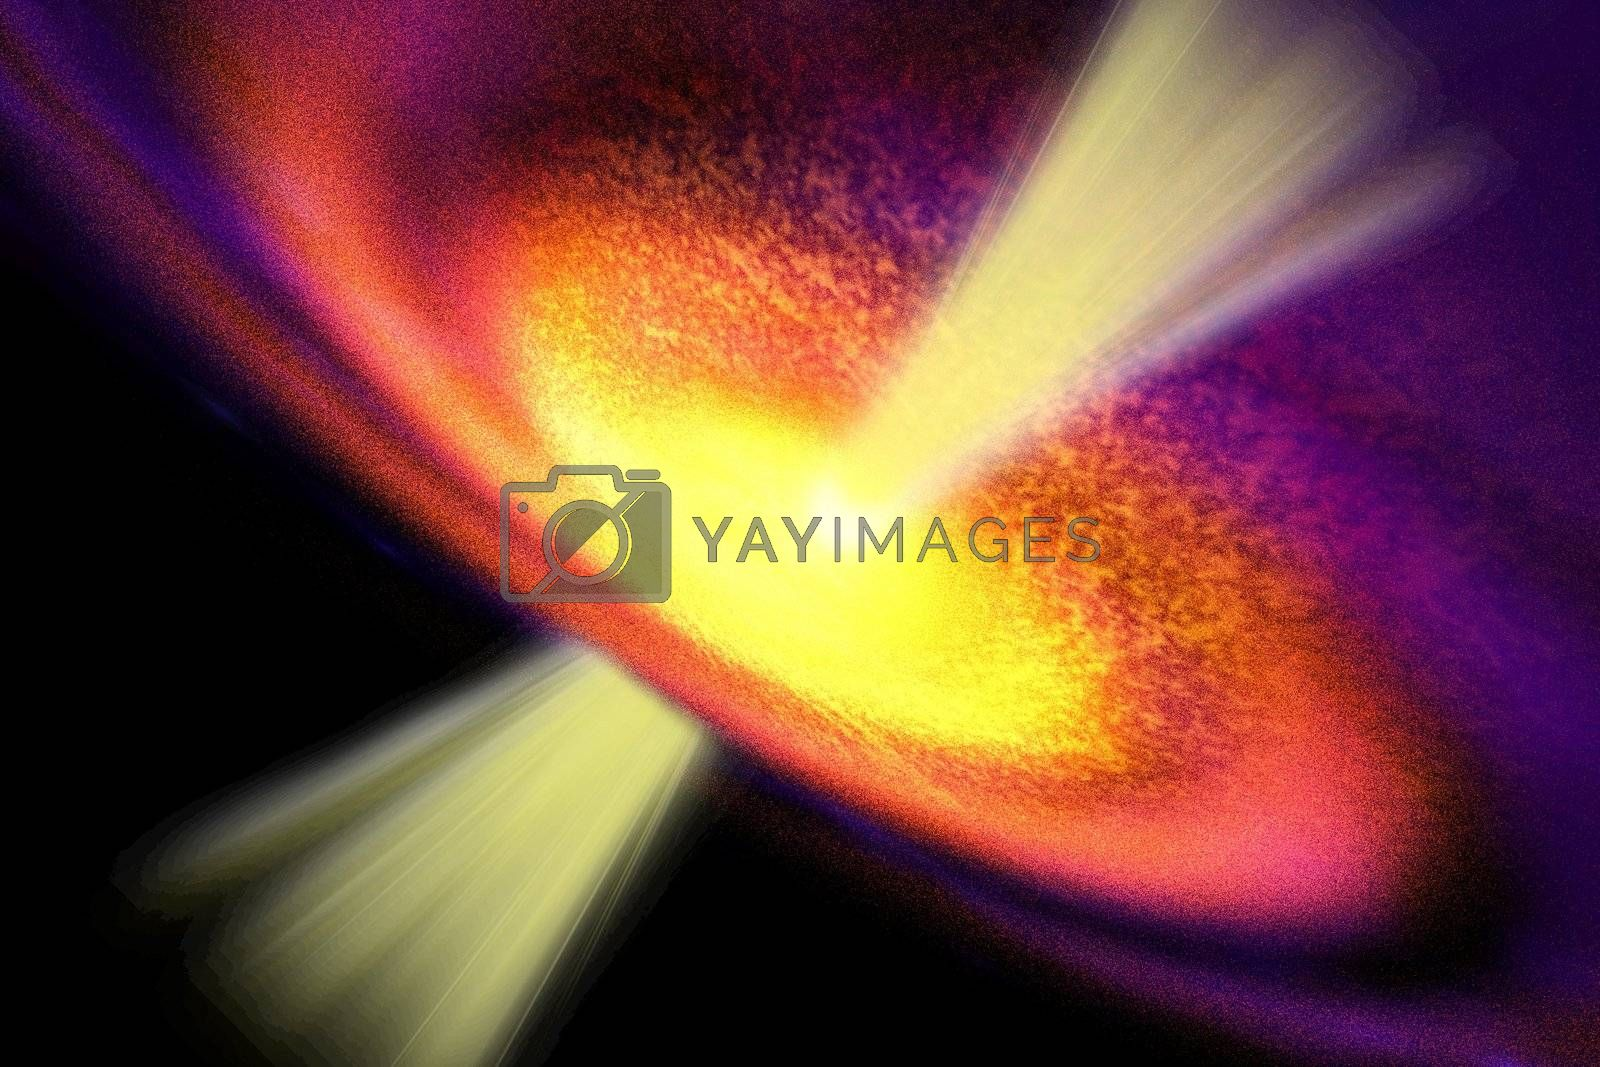 Powerful streams of energy spew out of a black hole in the middle of a galaxy.